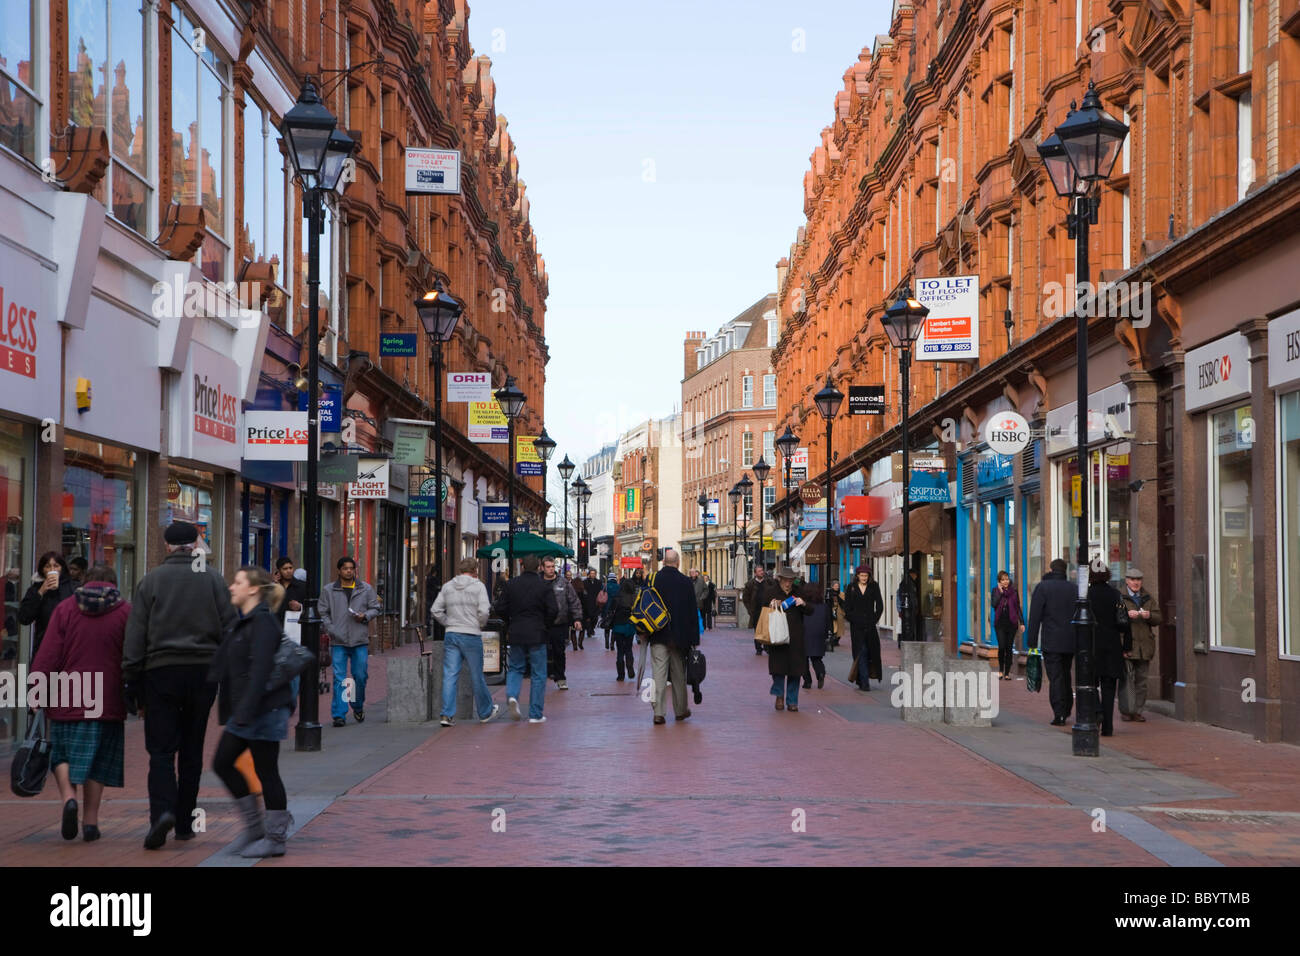 Queen Victoria Street, Reading, Berkshire, United Kingdom, Europe - Stock Image